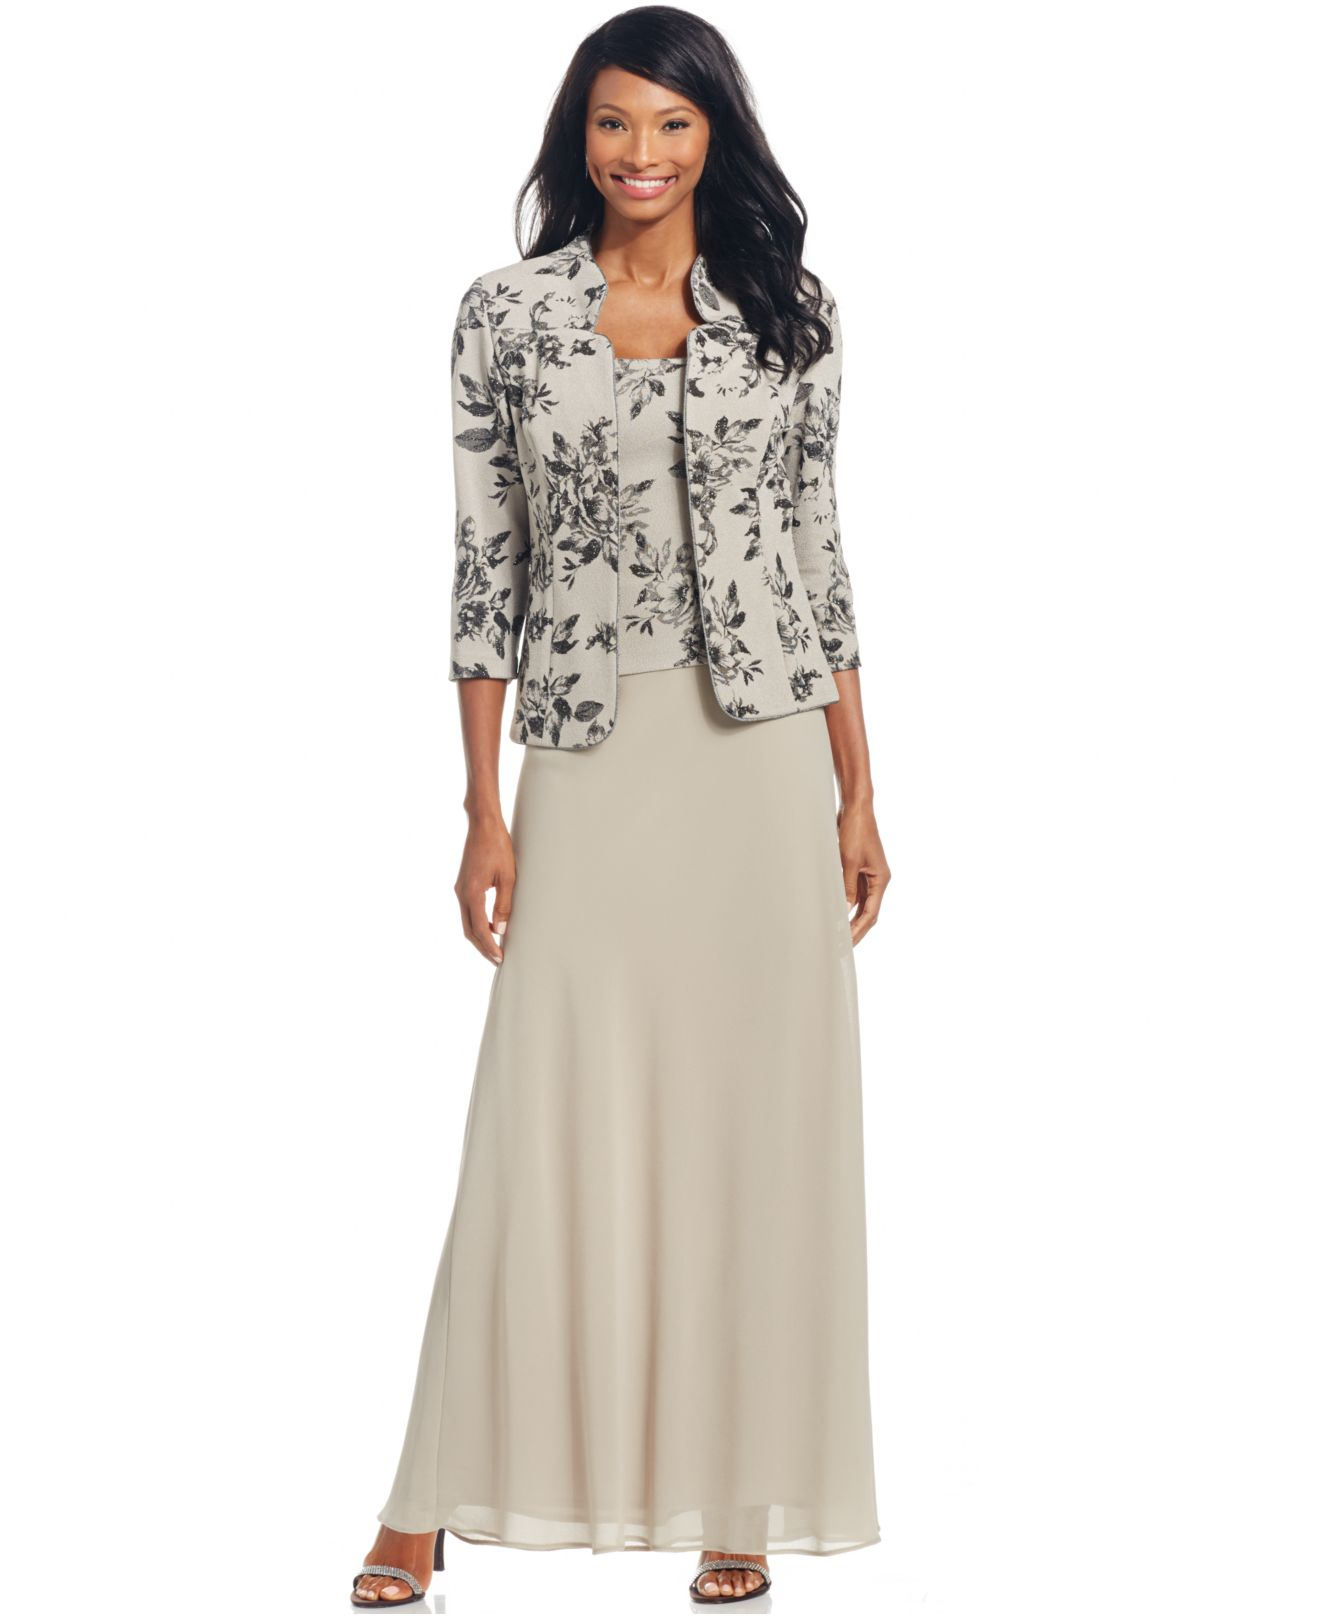 Lyst Alex Evenings Petite Floral Print Gown And Jacket In Gray